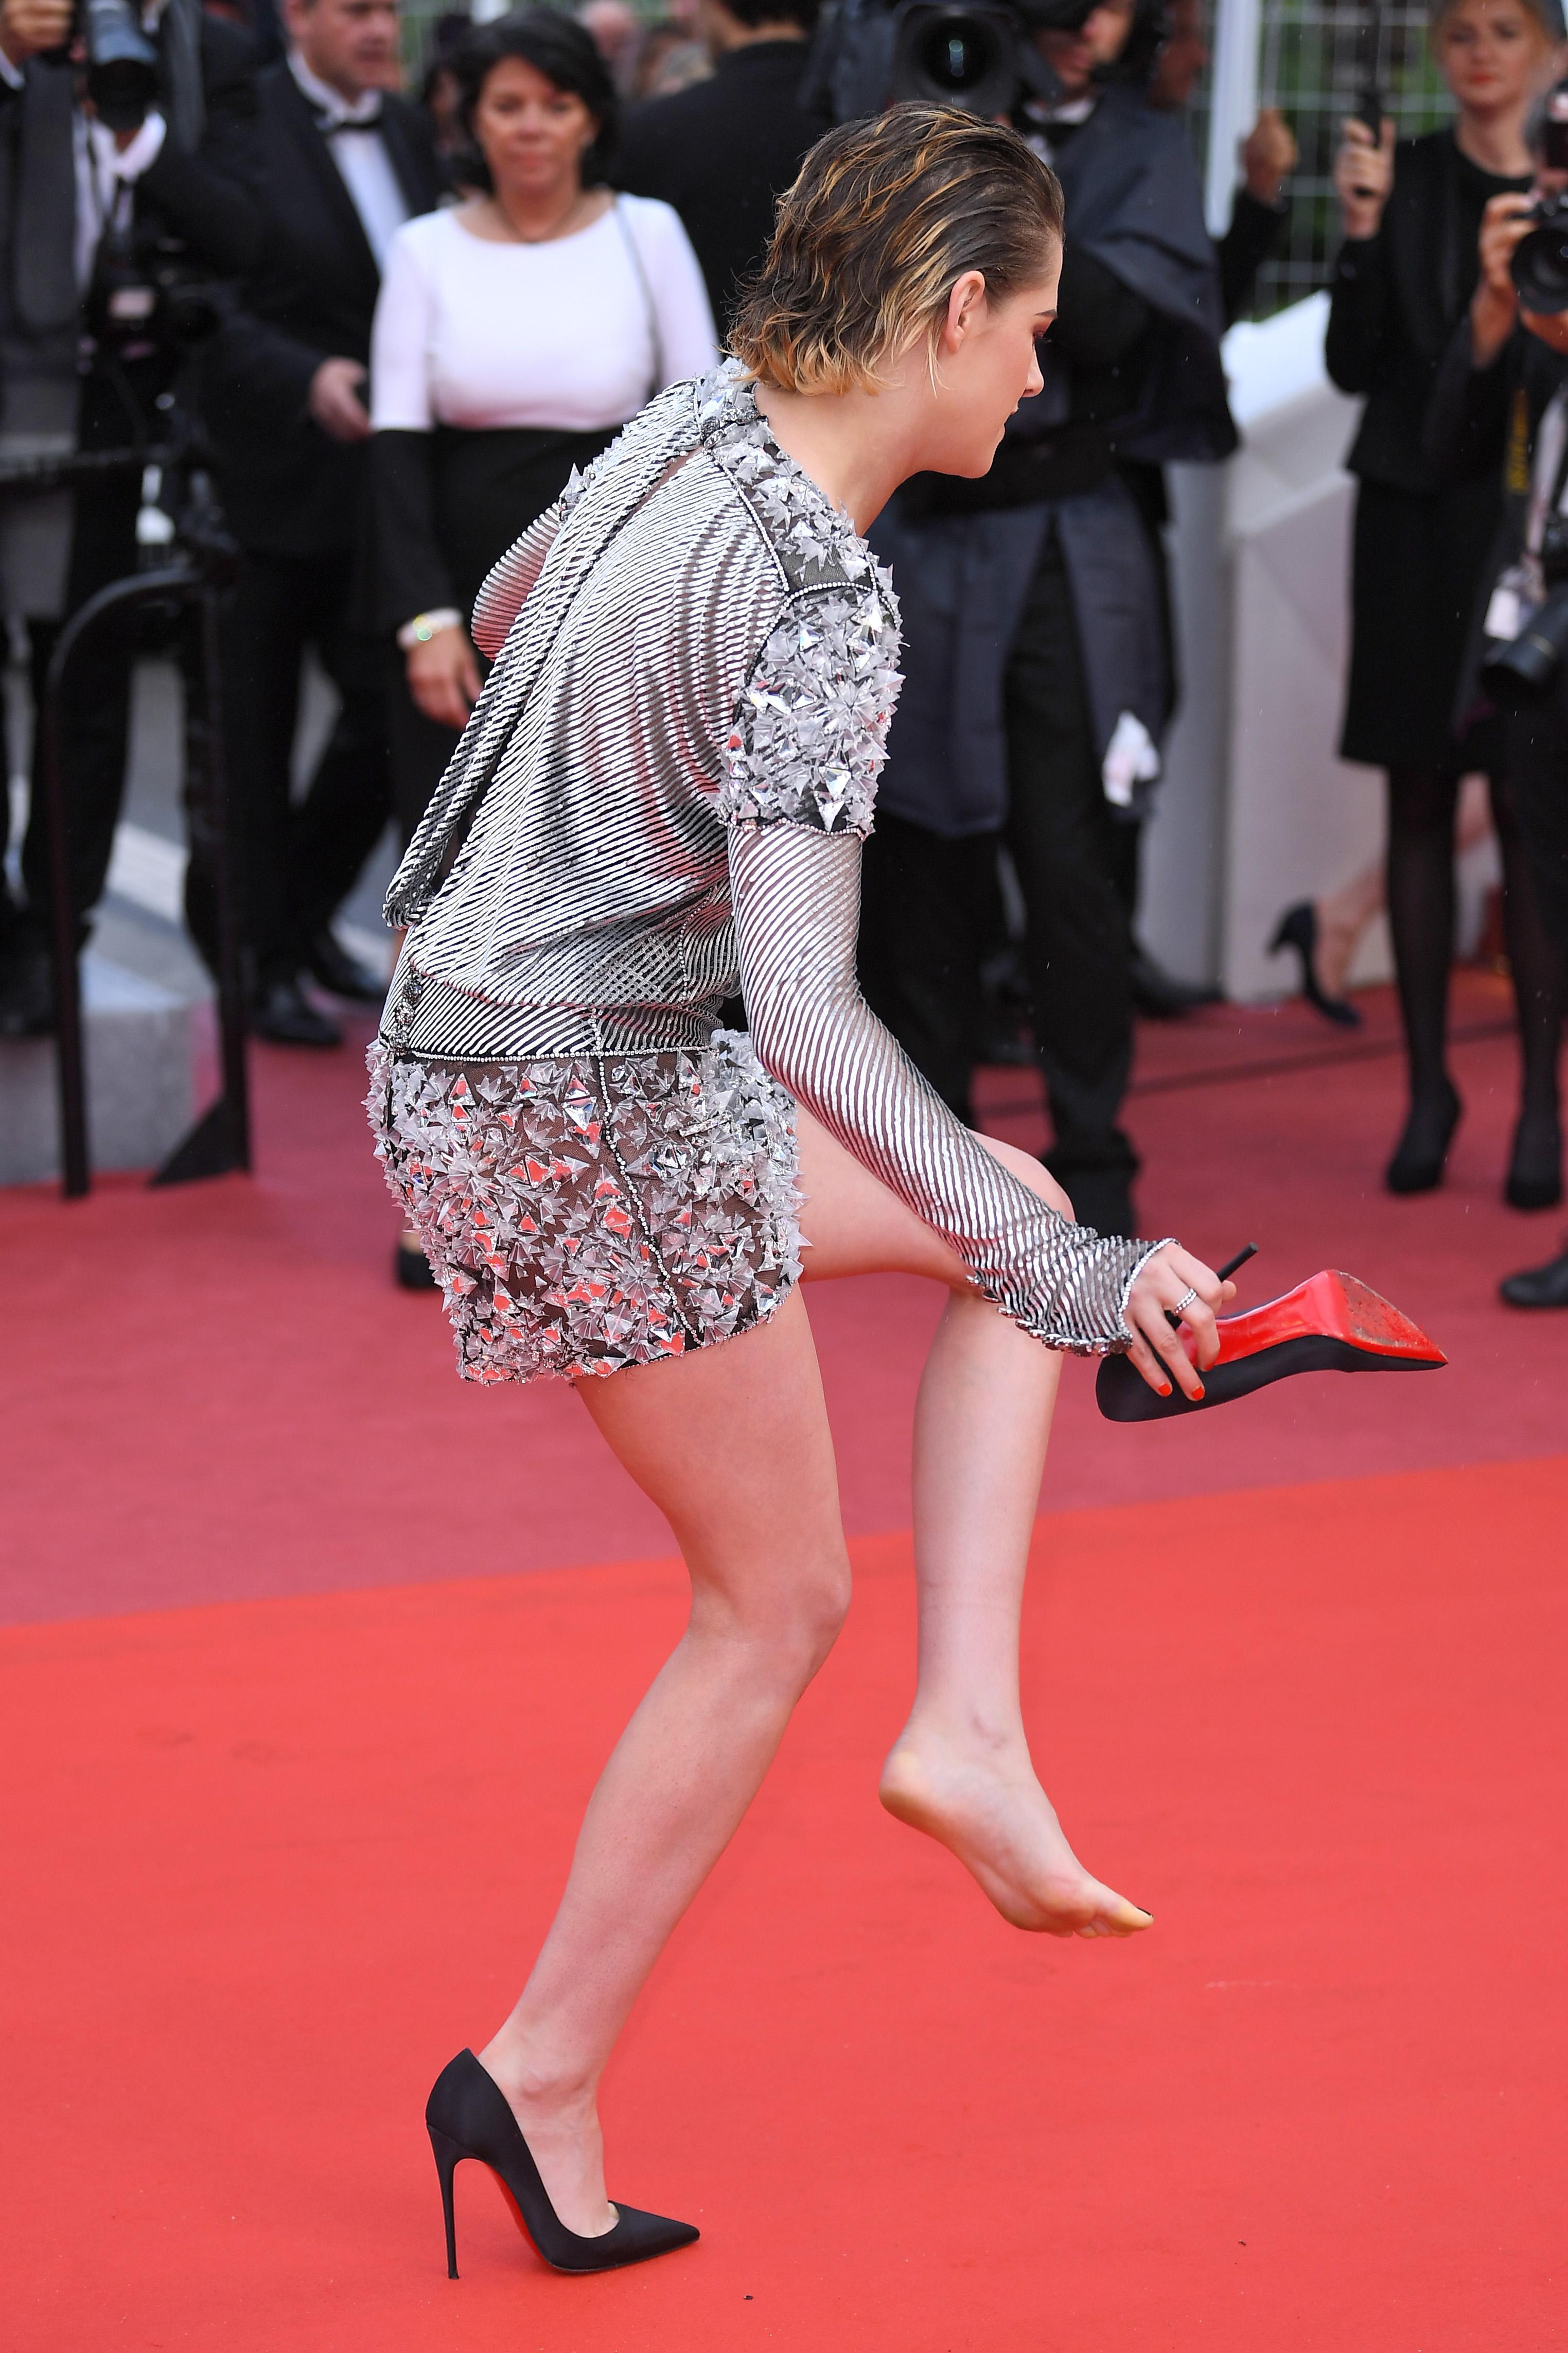 49 Sexy Kristen Stewart Feet Pictures Are Really